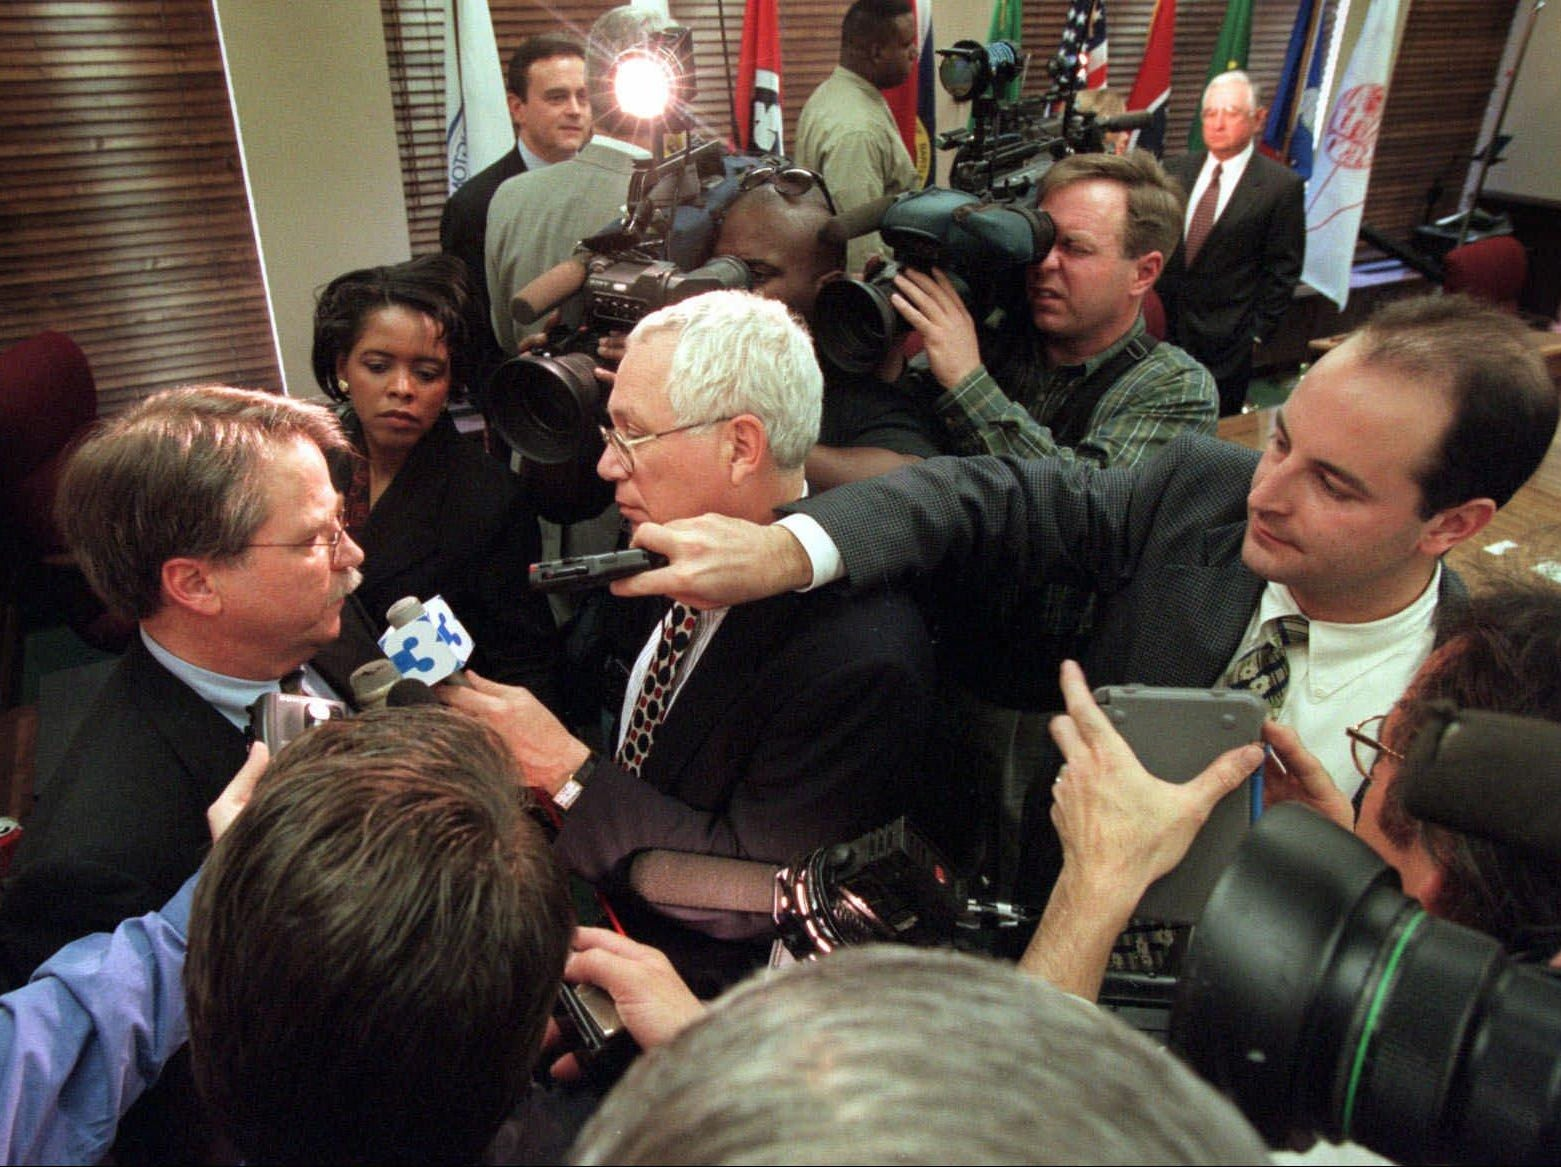 Steve Underwood, left, an attorney representing the Tennessee Oilers, speaks to reporters following a meeting of the Memphis and Shelby County Sports Authority Feb. 24, 1998 in Memphis, where an agreement was announced releasing the team from playing at the Liberty Bowl next season.